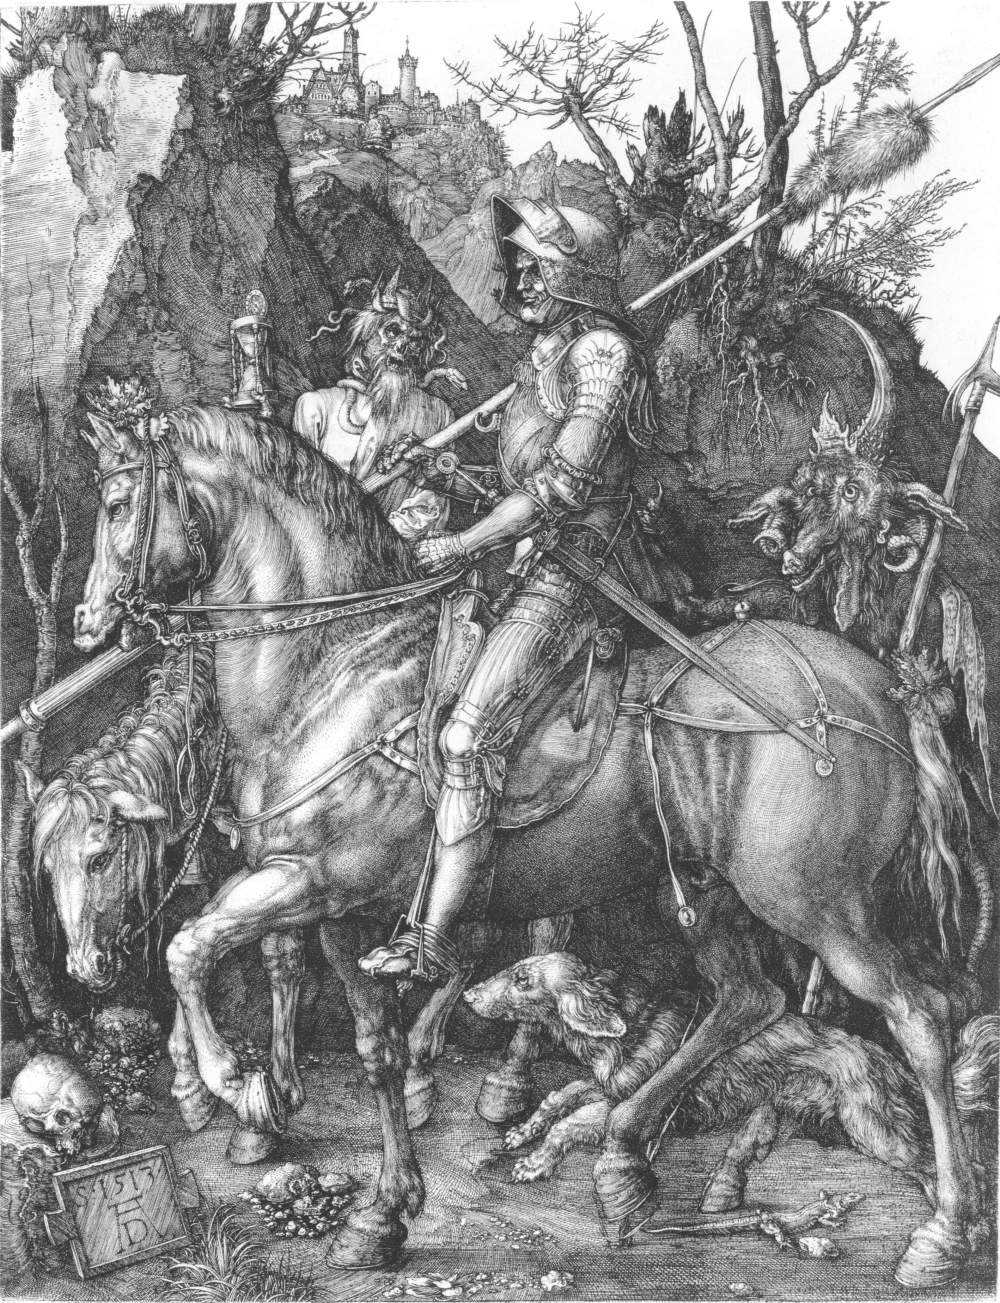 Dead Poets Society: Albrecht Durer Etching of Knight, Death, and the Devil